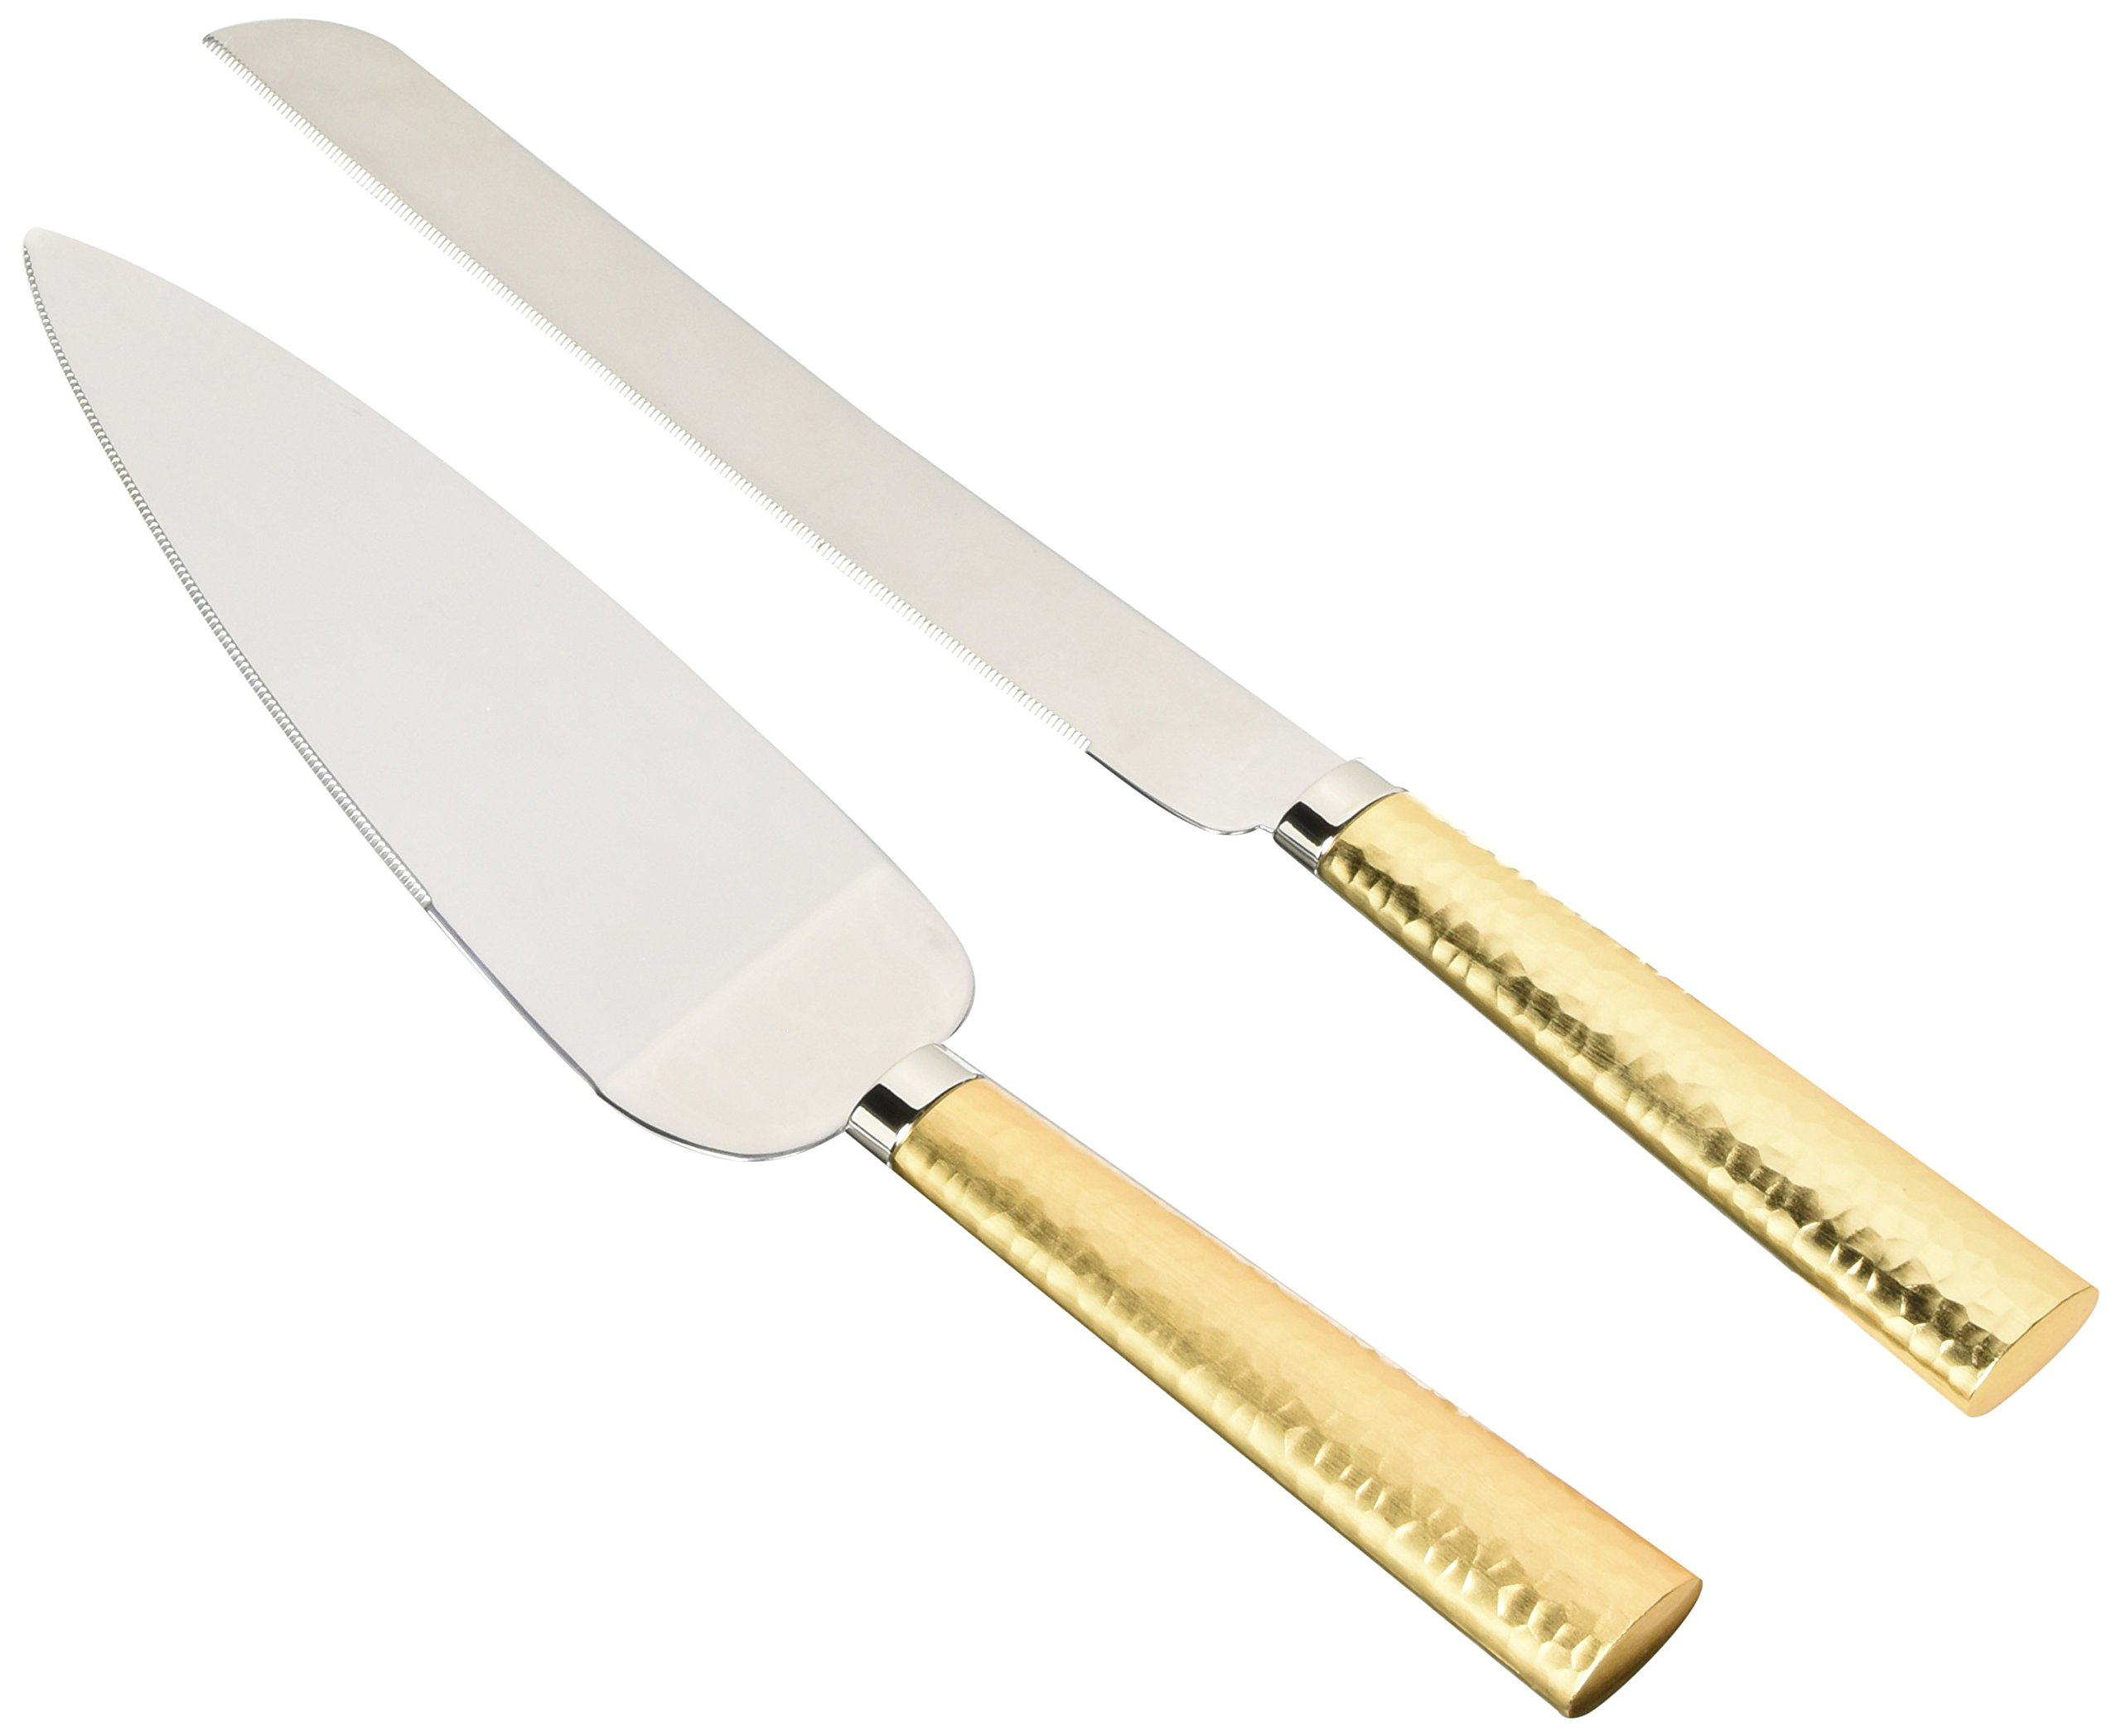 Weddingstar NCK5G flatware-cake-servers, 11'' Cake Server & 13'' Cake Knife, Gold by Weddingstar Inc.